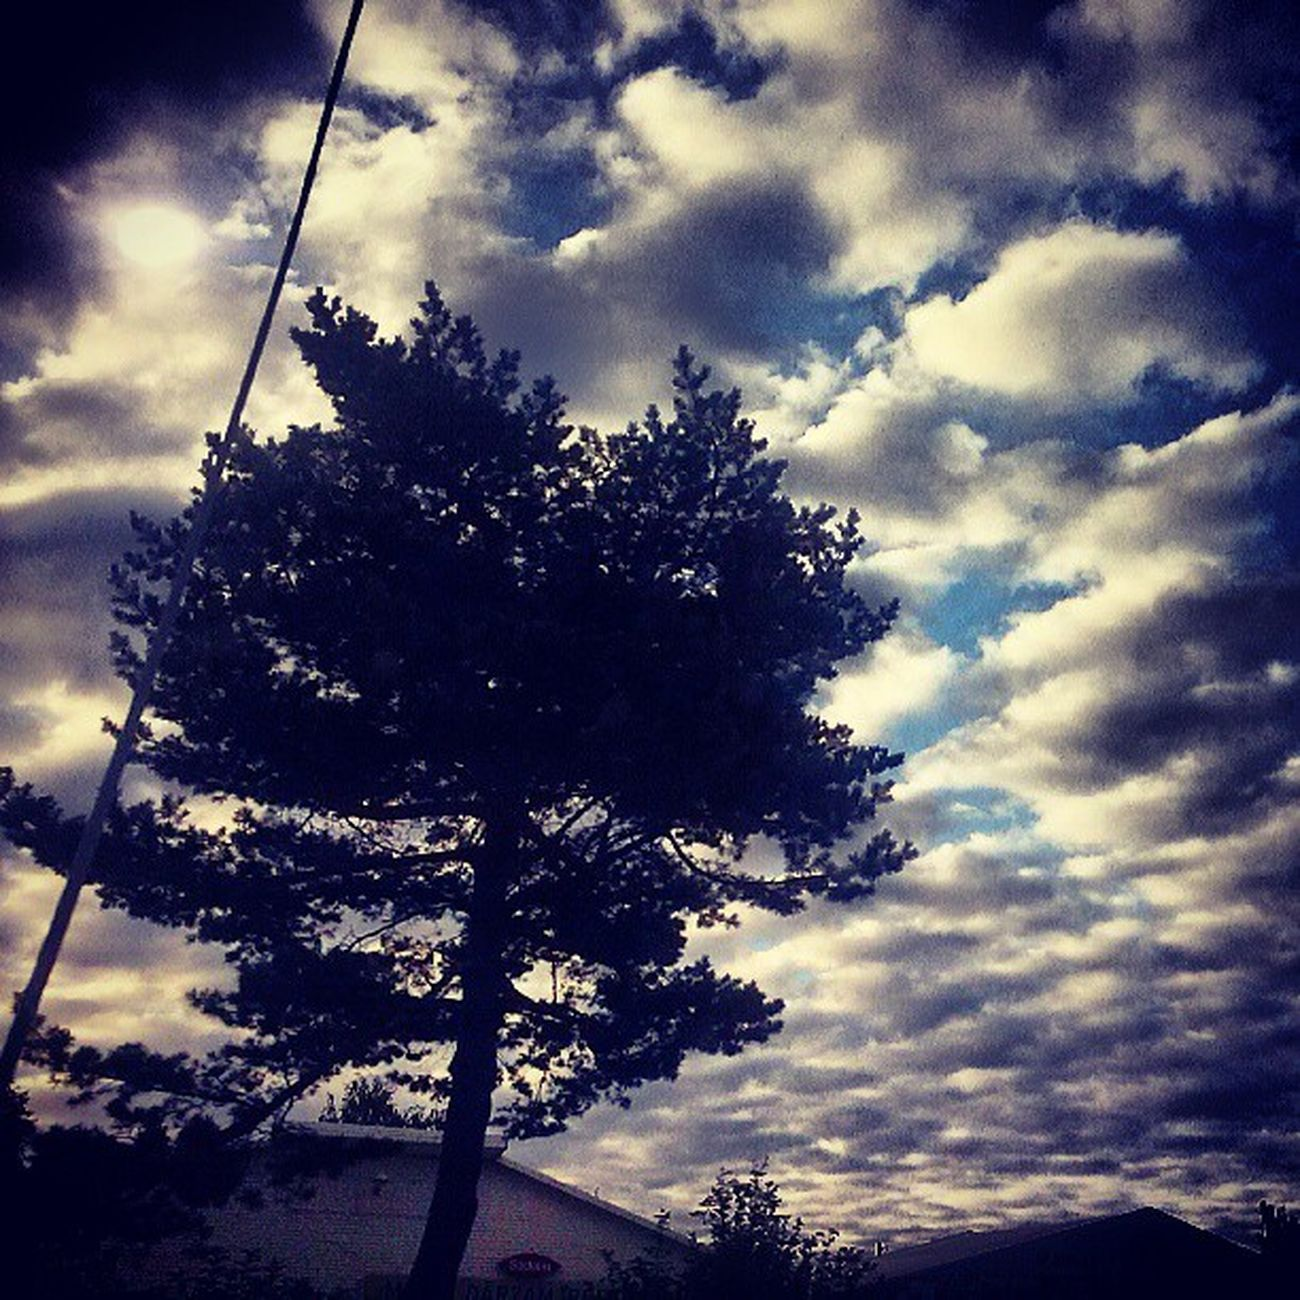 Tree Sky Clouds Nature sun summer summertime holiday weekend morning beautiful weather nice cute cool adorable like likeback followme ifollow teamfollowback good day goodday